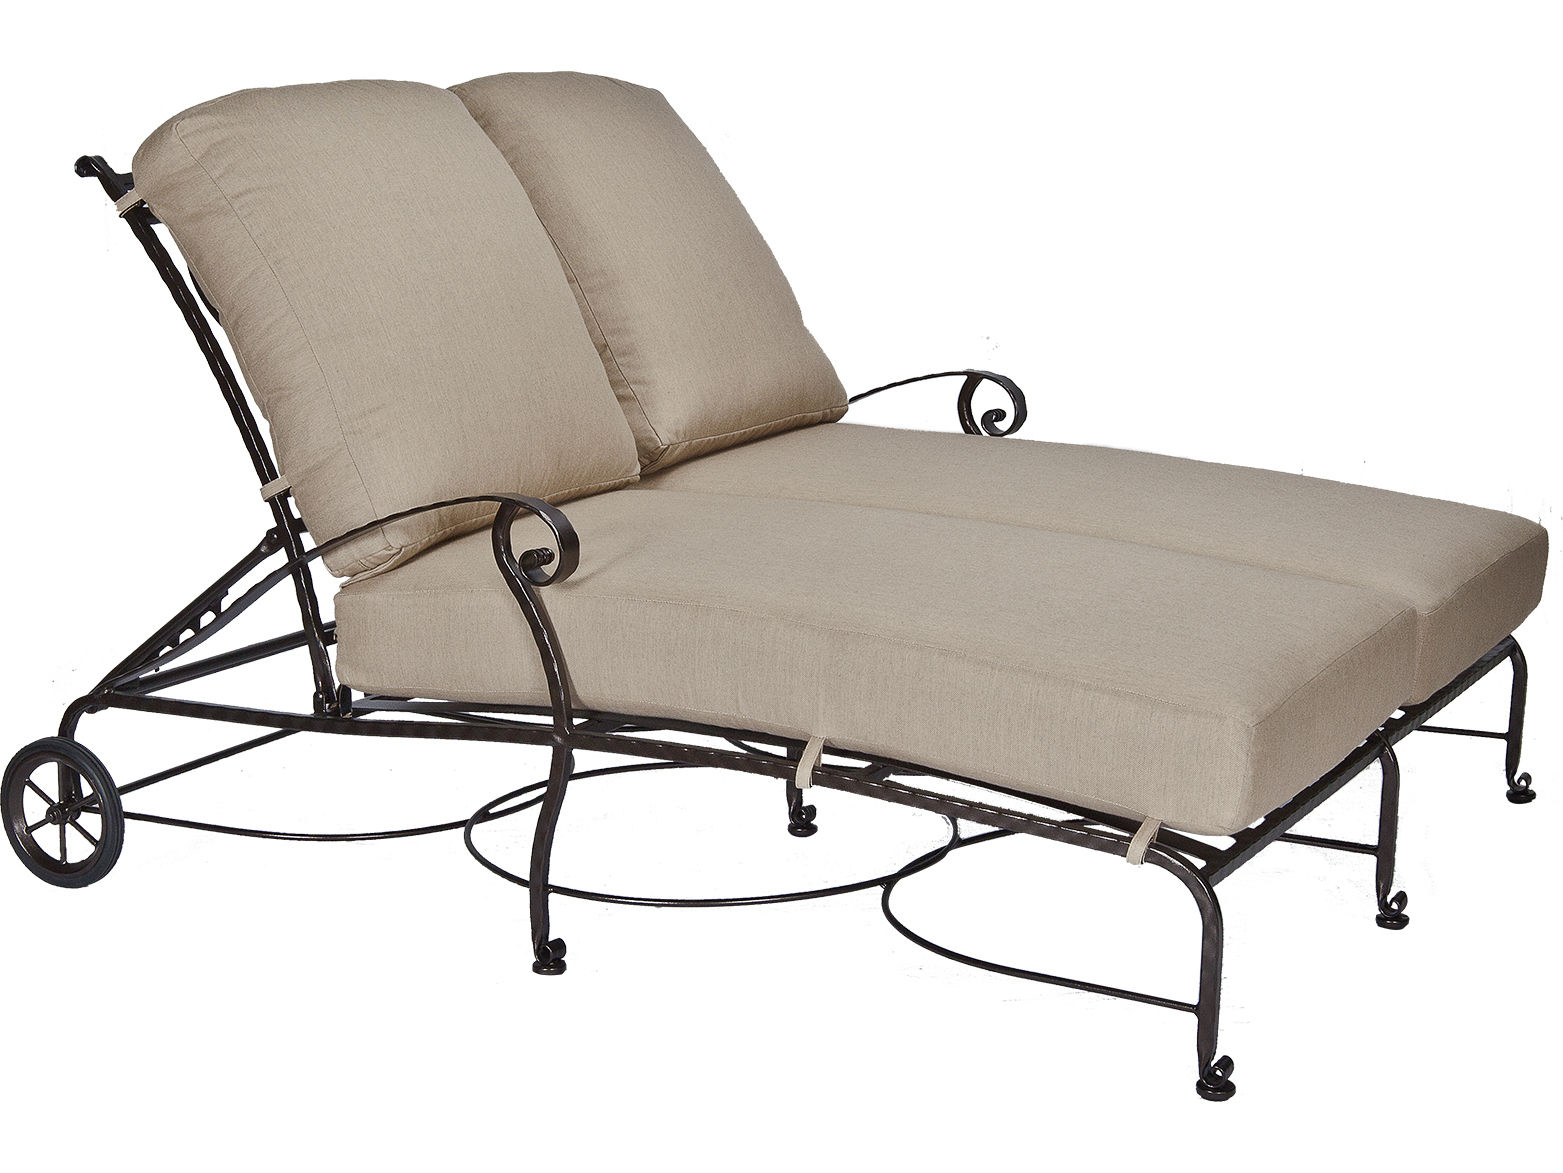 Ow Lee San Cristobal Wrought Iron Double Chaise Lounge